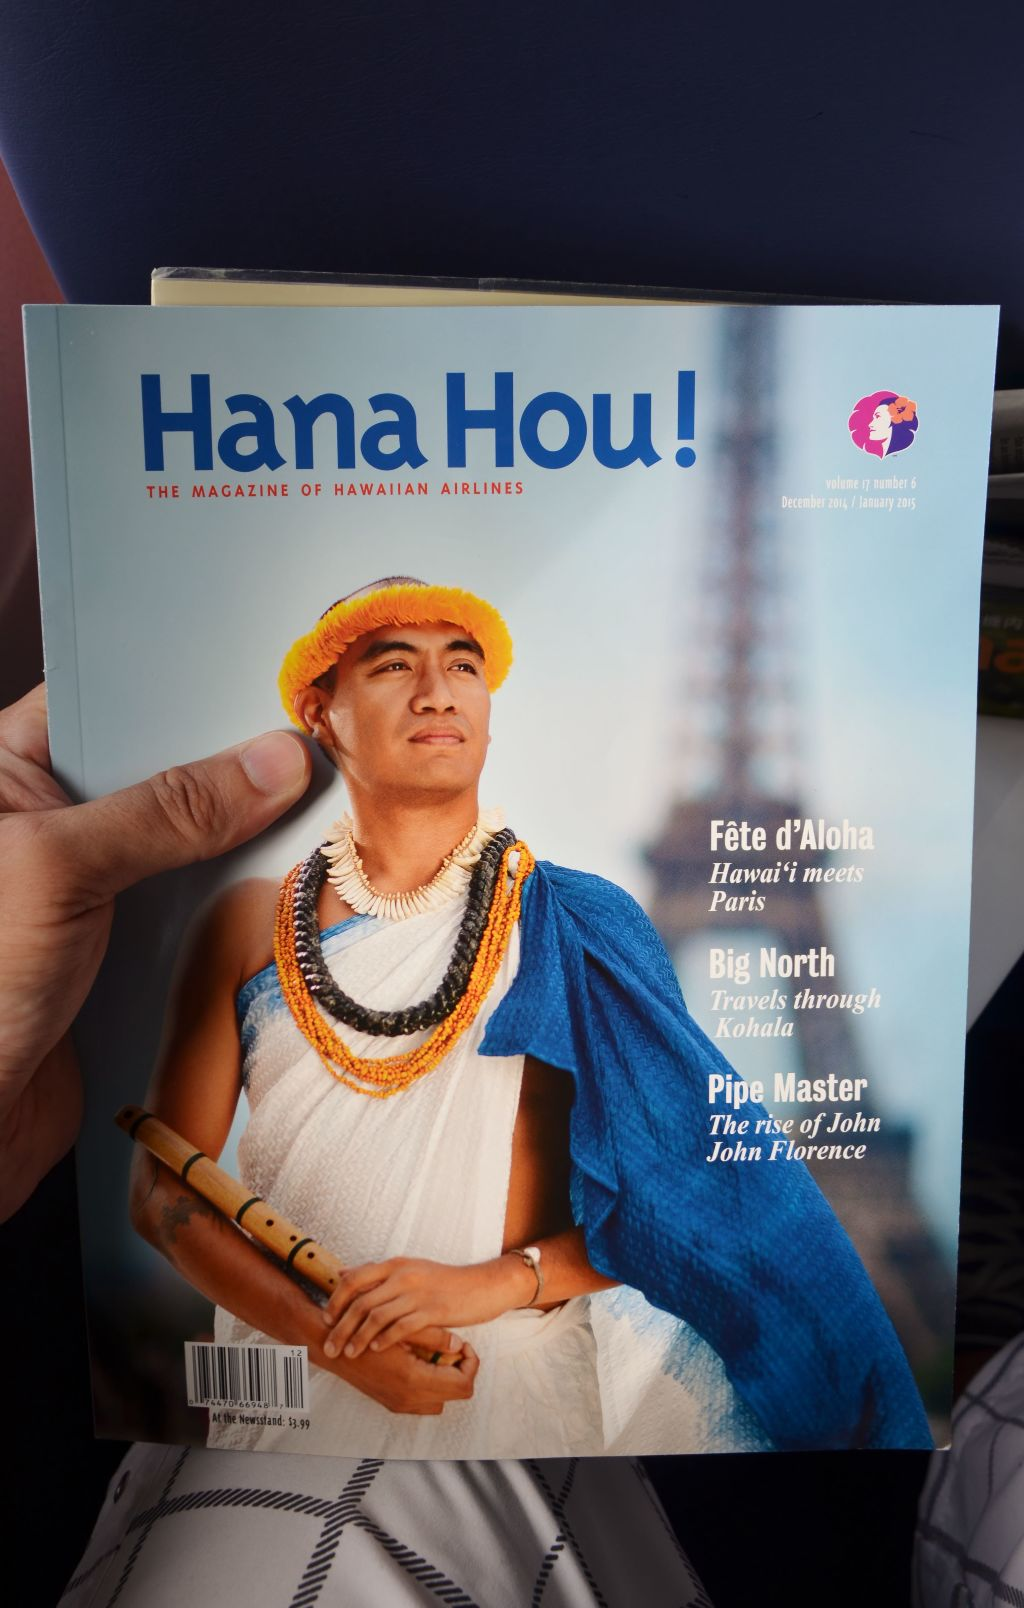 Hawaiian Airlines Boeing 717 200 first class cabin Hana Hou magazine